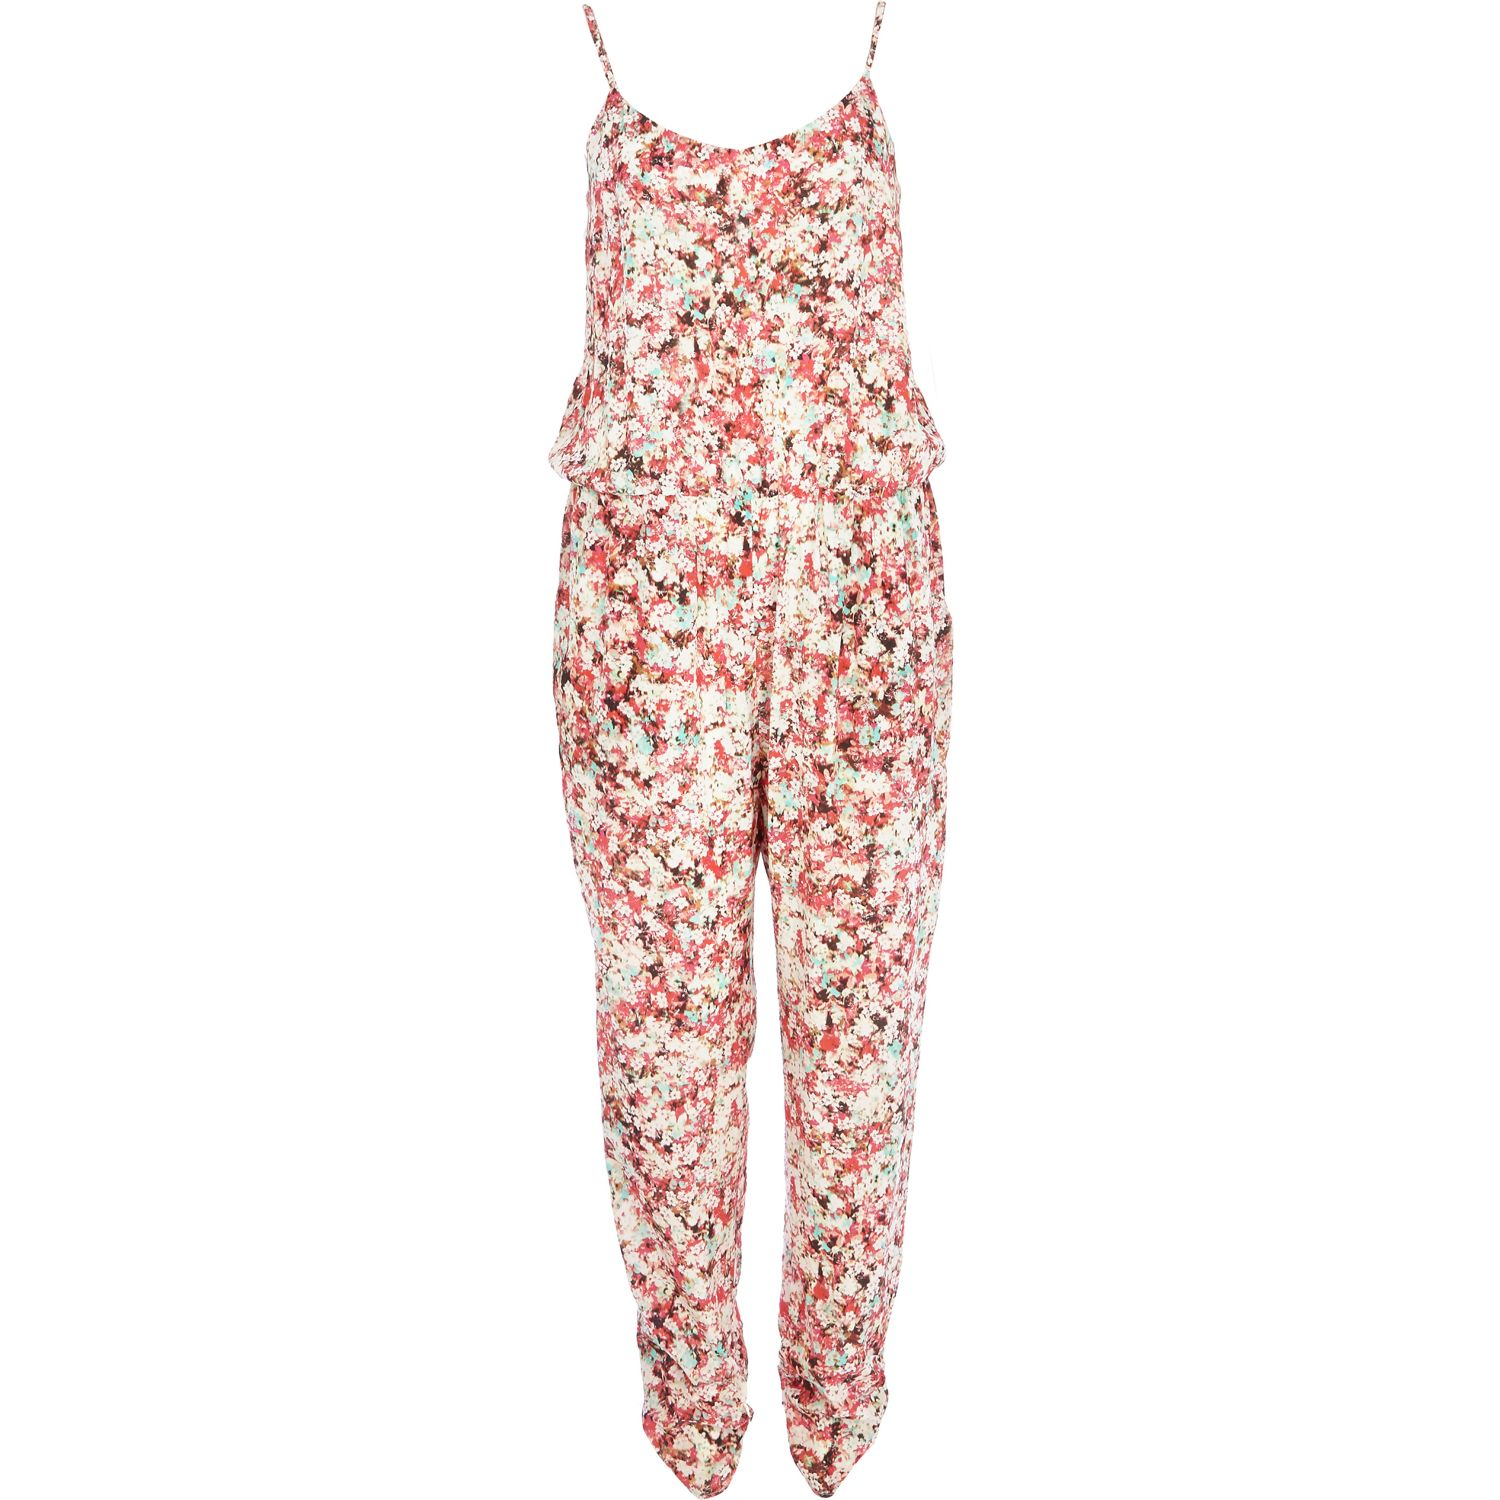 e07666efac1c River Island Pink Blurred Floral Print Cami Jumpsuit In Floral (pink)